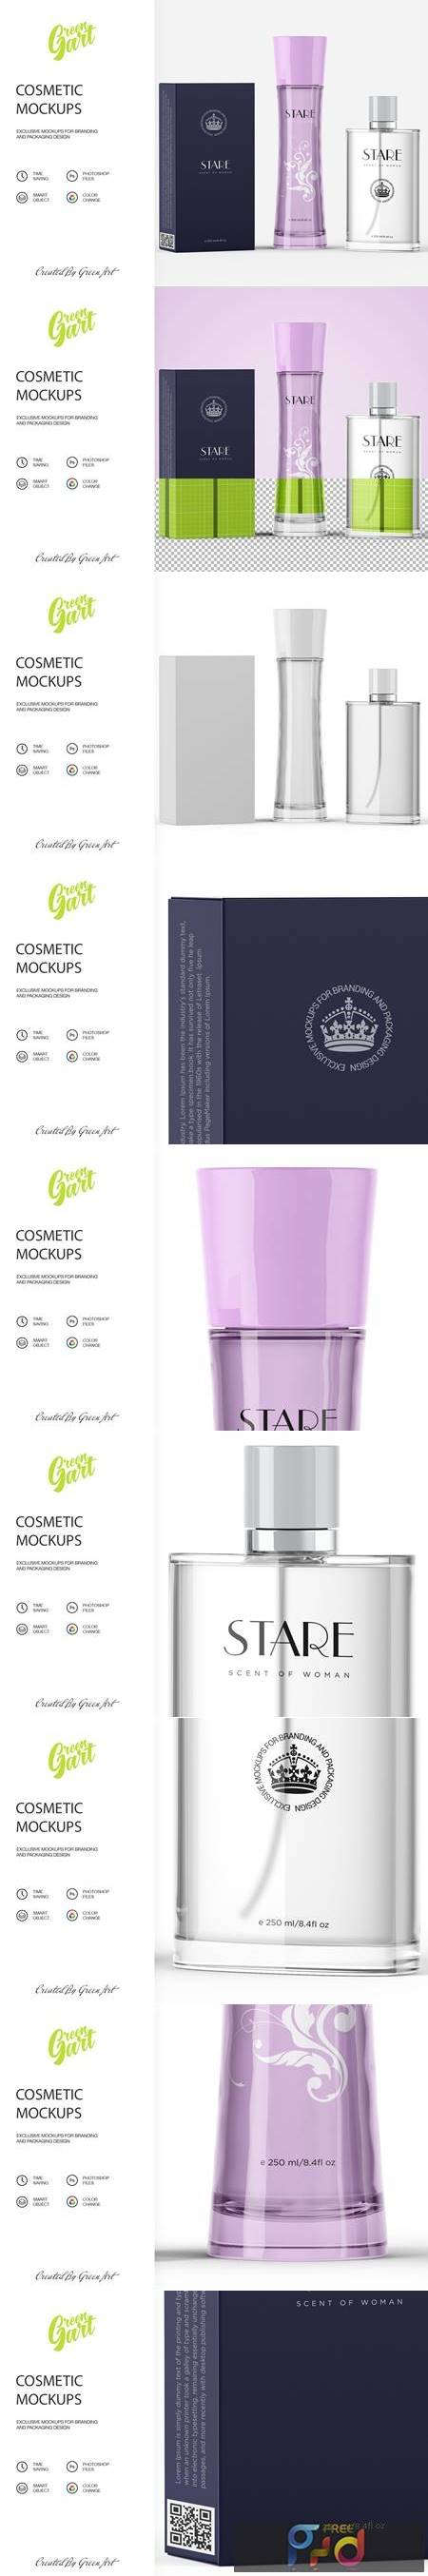 Cosmetics Mock-up 2243707 1